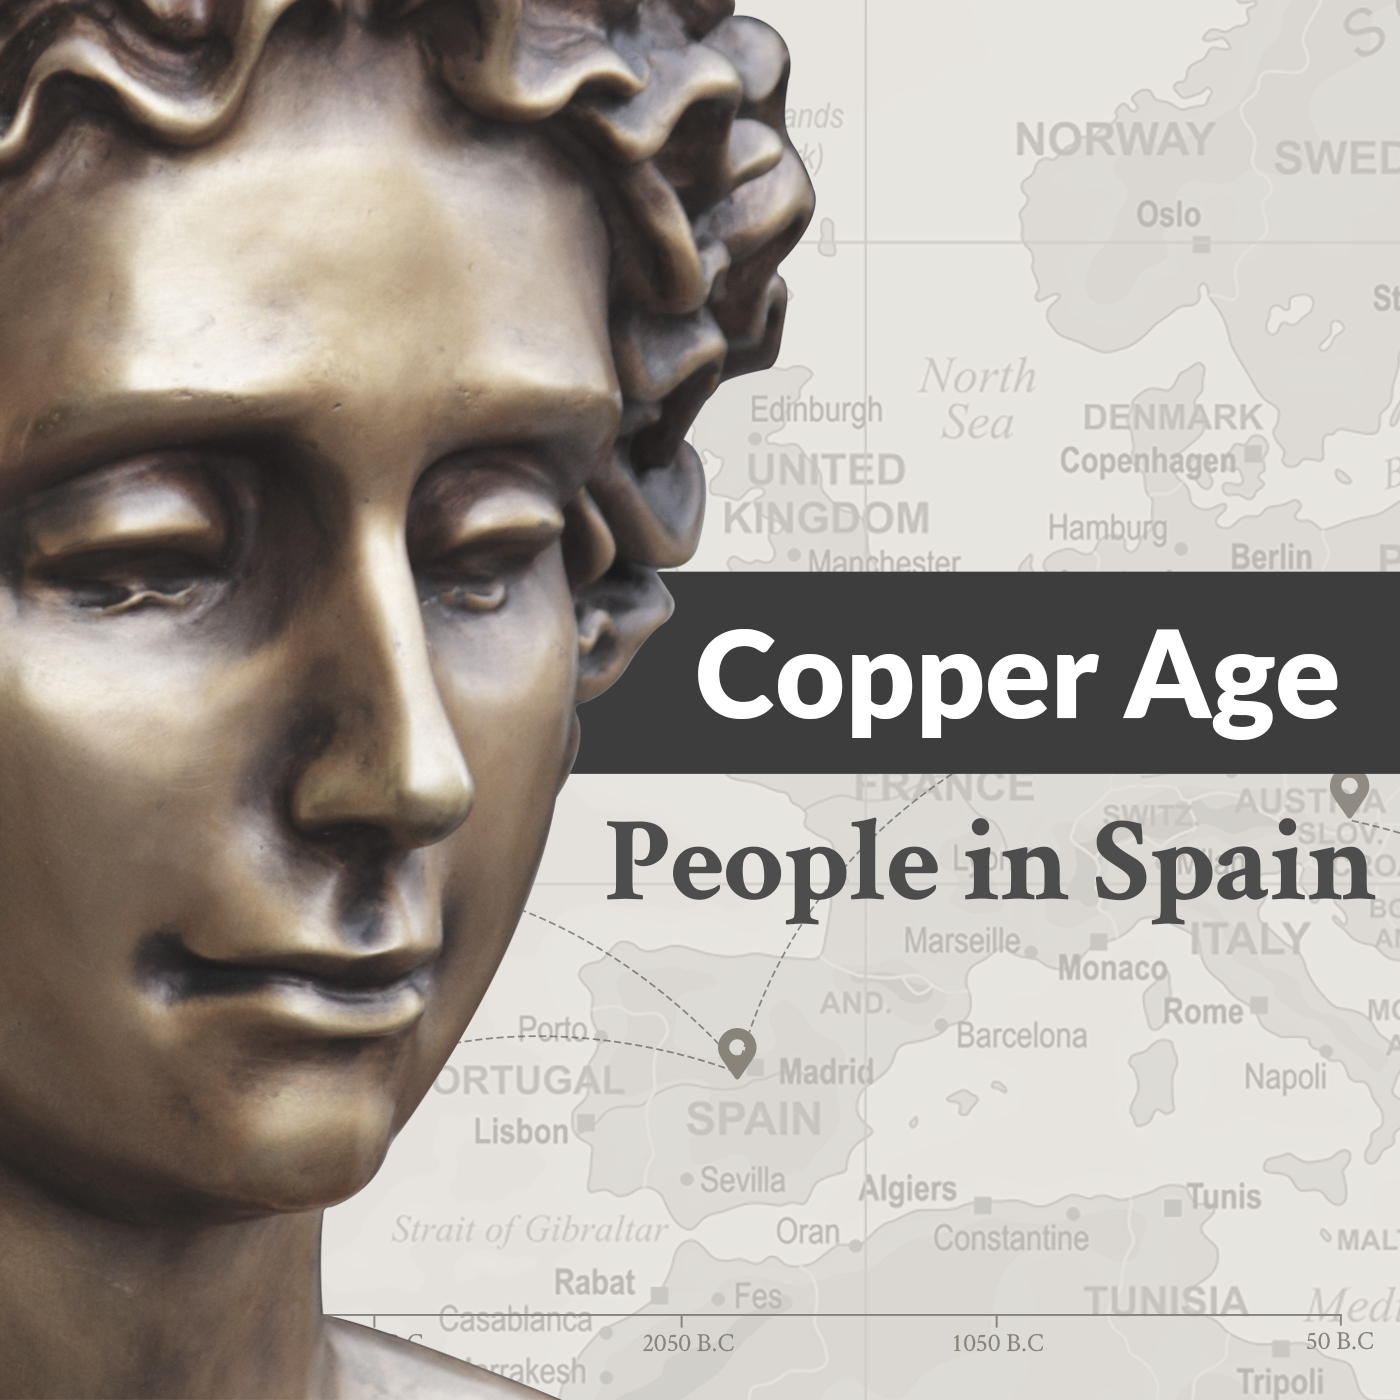 Copper Age People in Spain